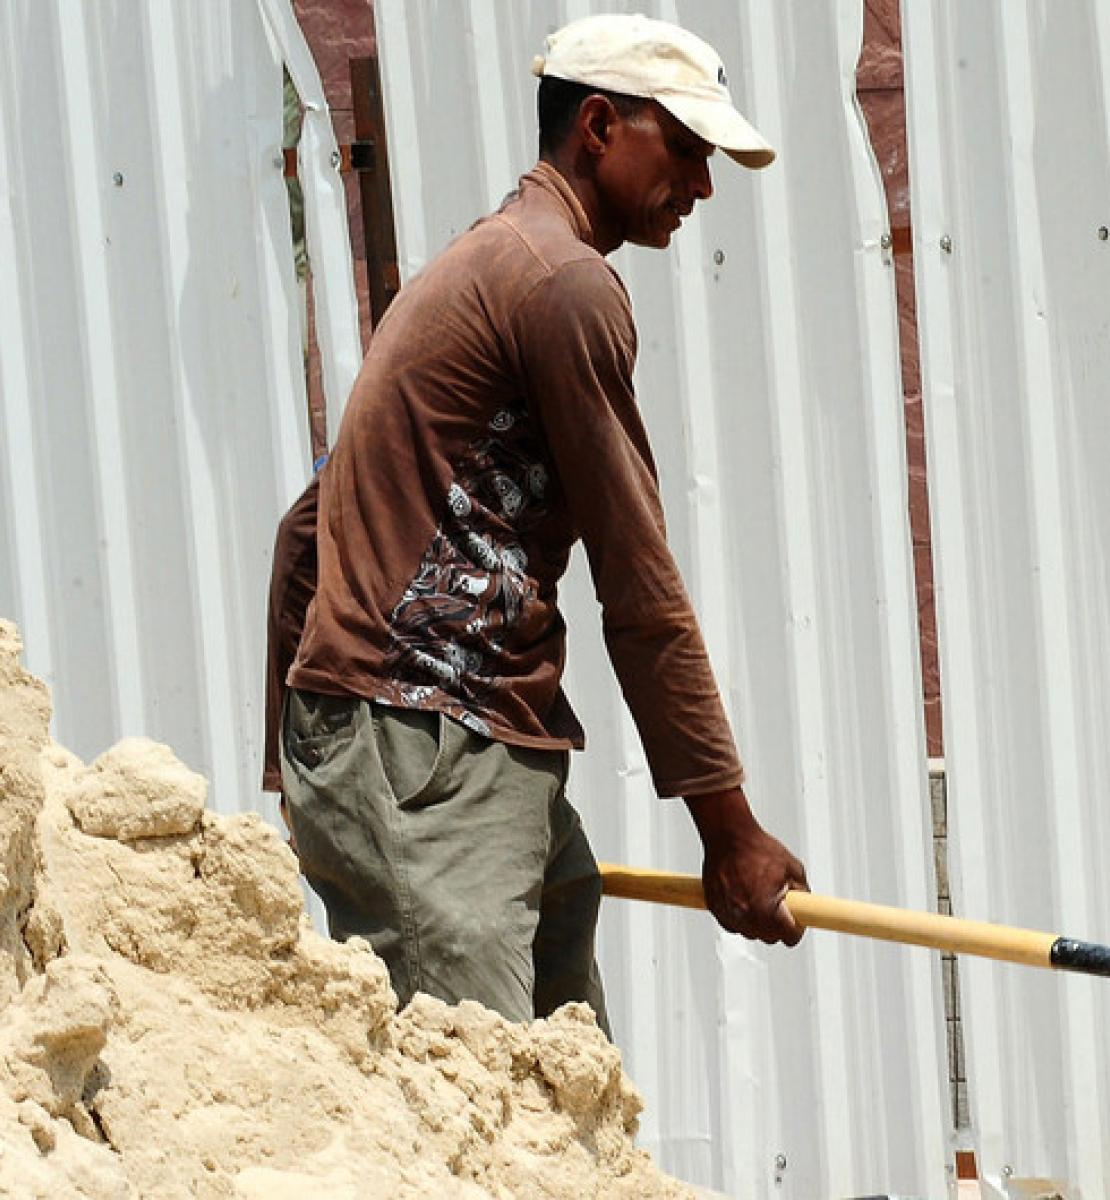 A labourer shoveling sand at a construction site.